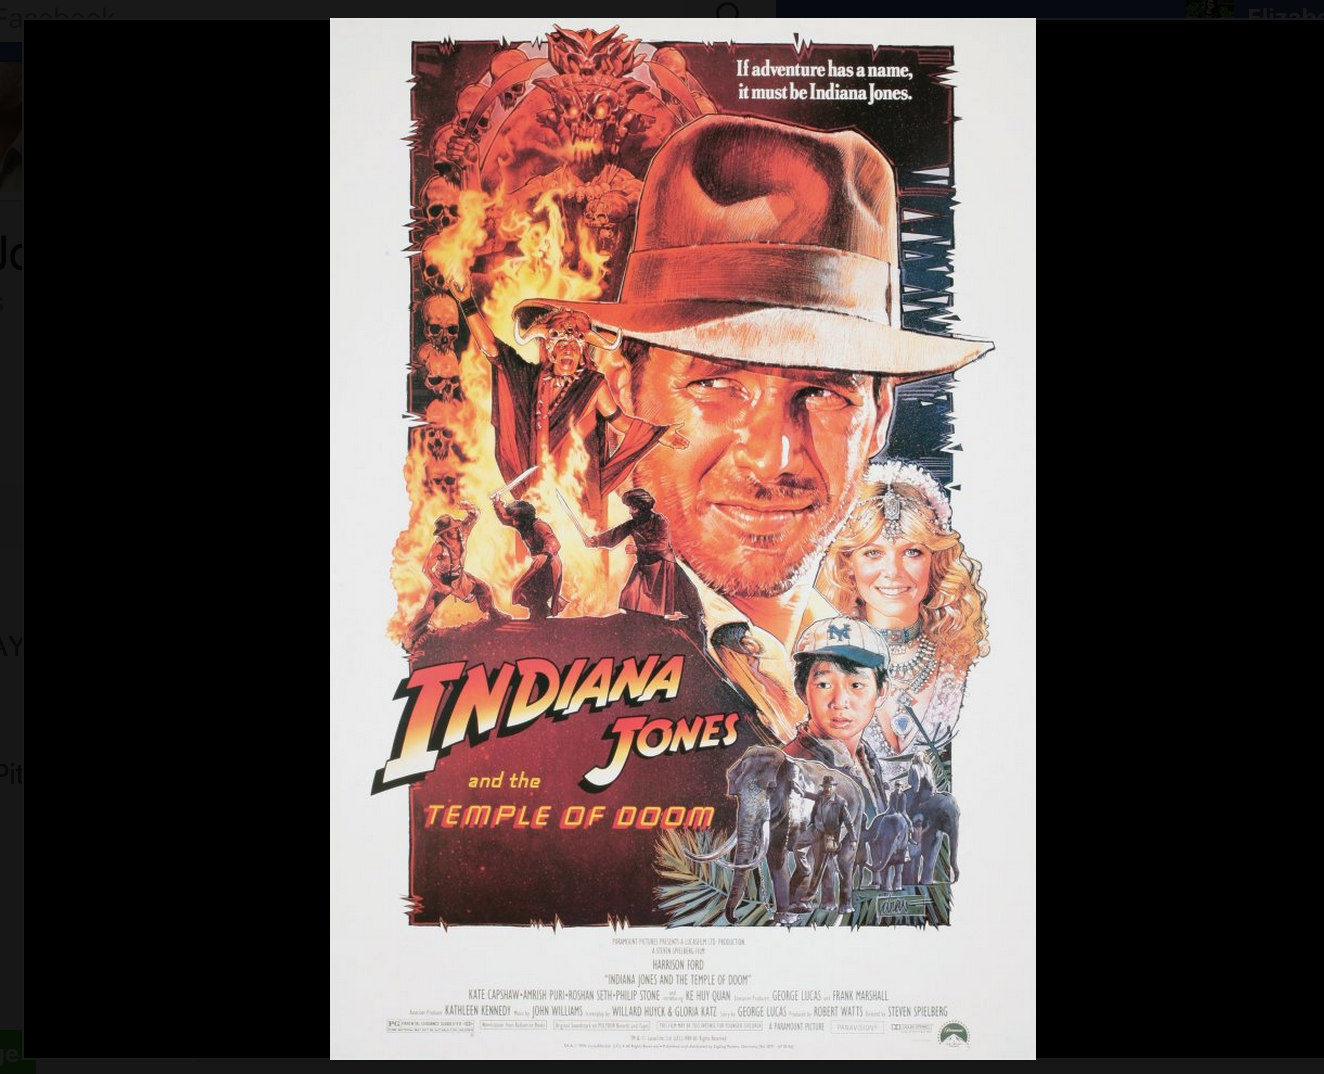 Indiana Jones, movie poster, Facebook, Harrison Ford